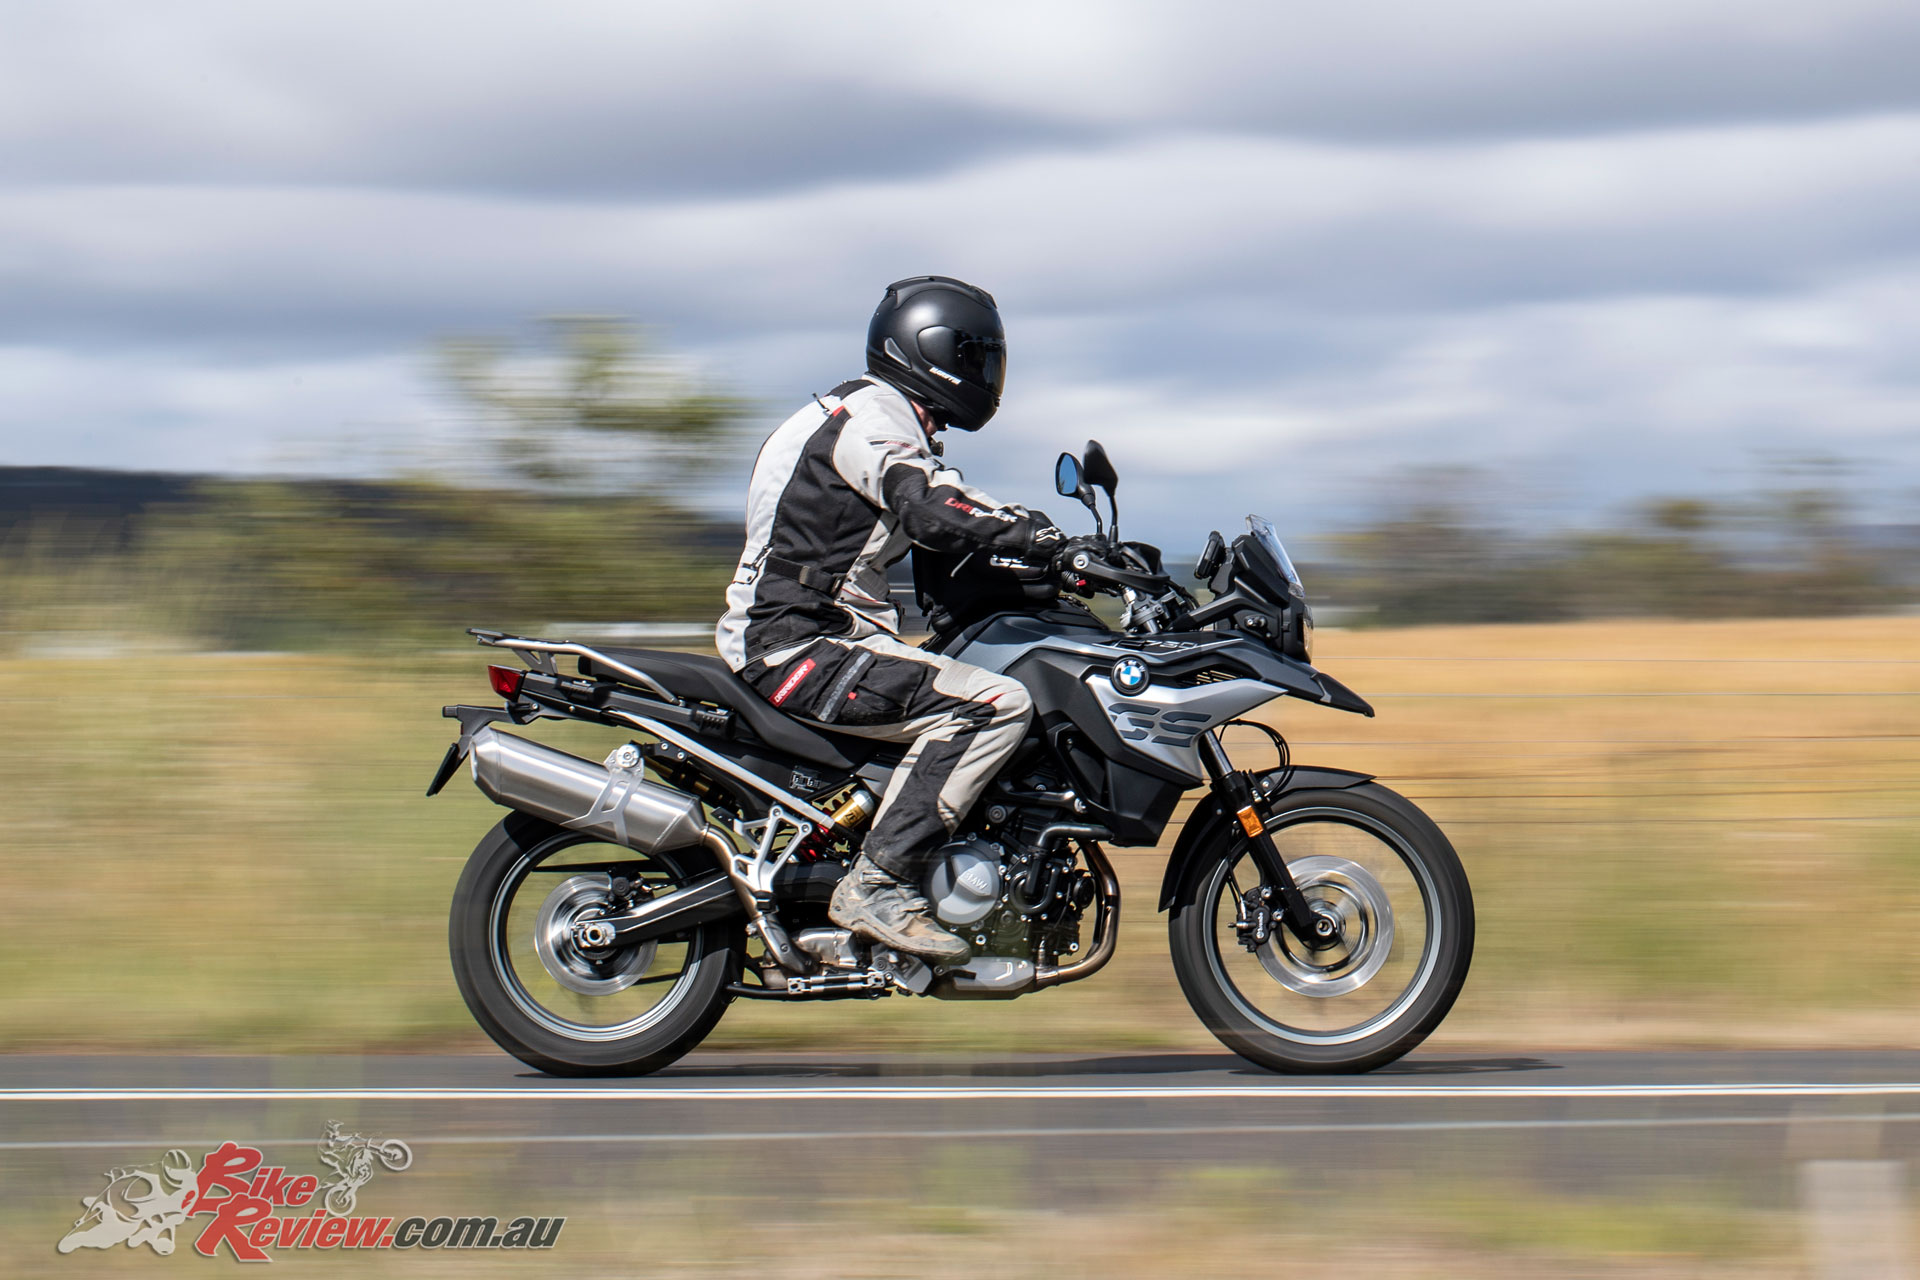 BMW's 2019 F 750 GS offers a more road orientated version, with less power and a lower seat height